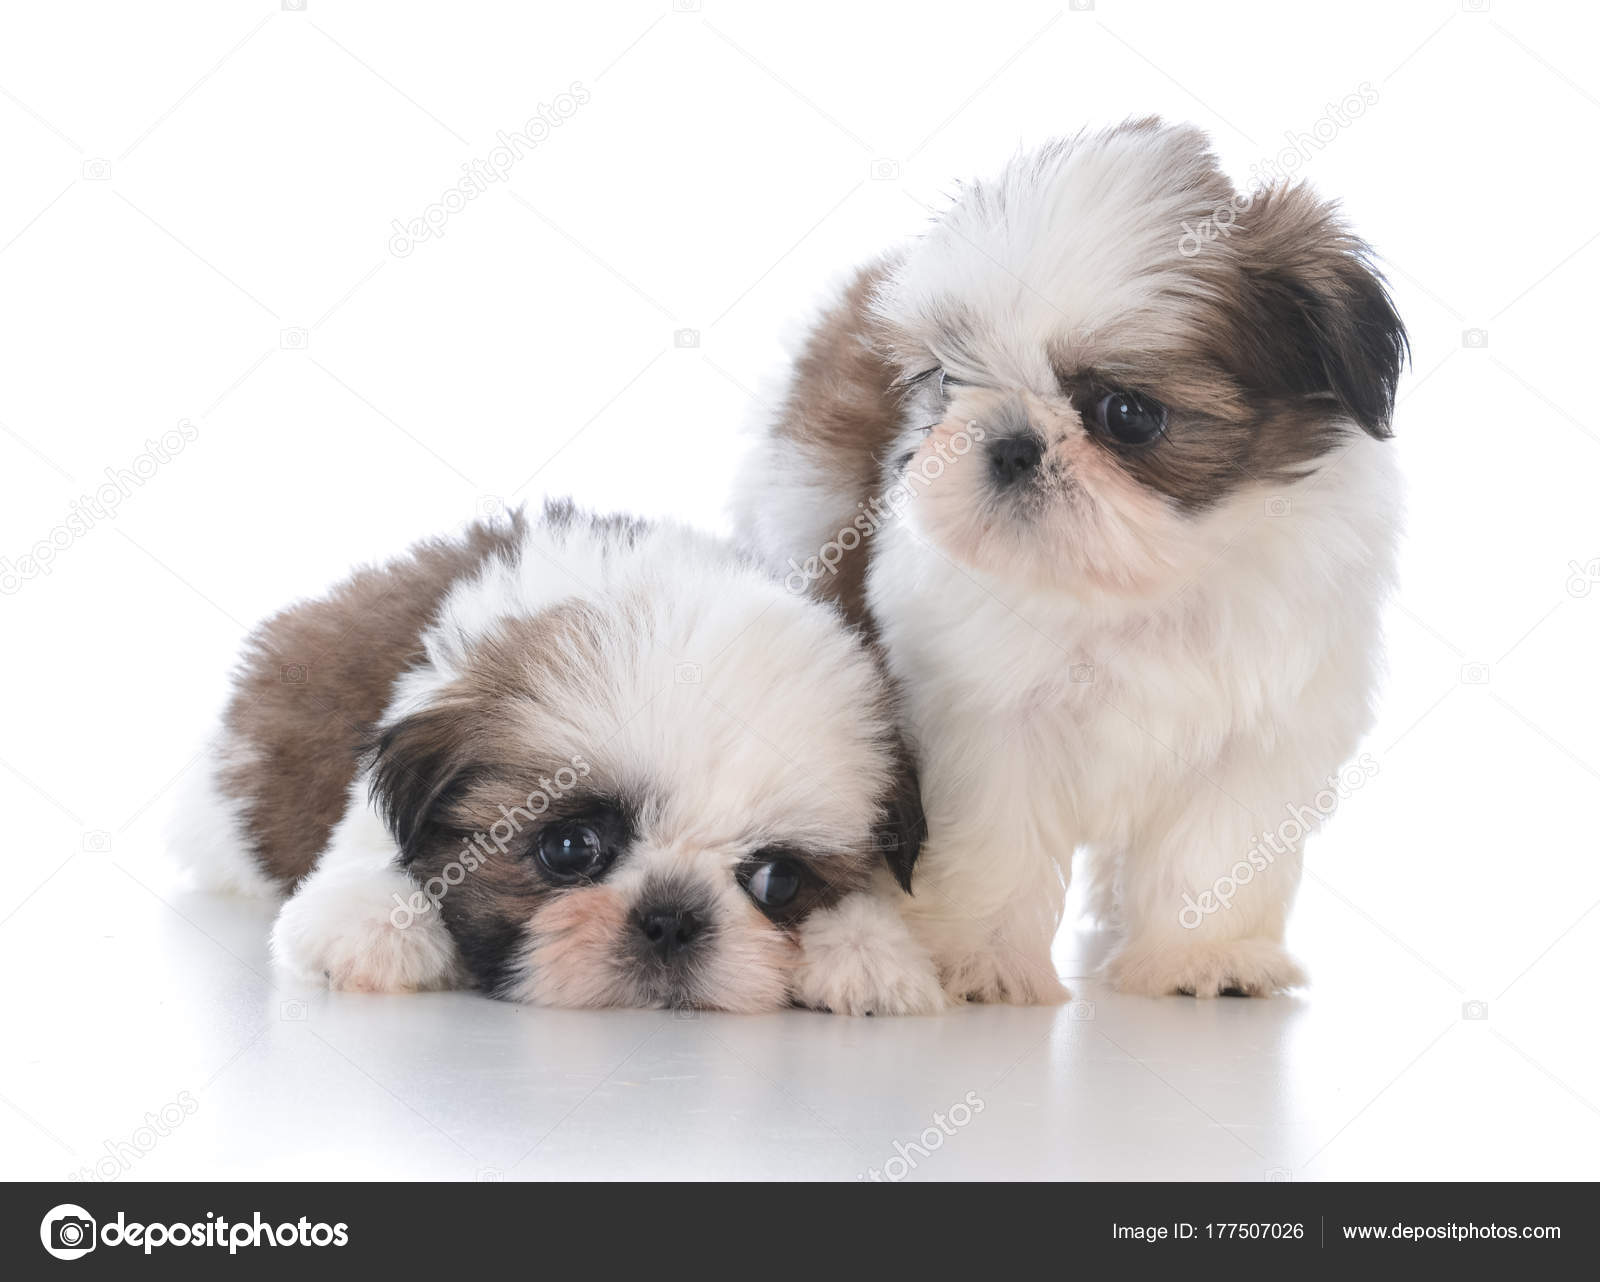 Two Shih Tzu Puppy Litter Mates Stock Photo Willeecole 177507026